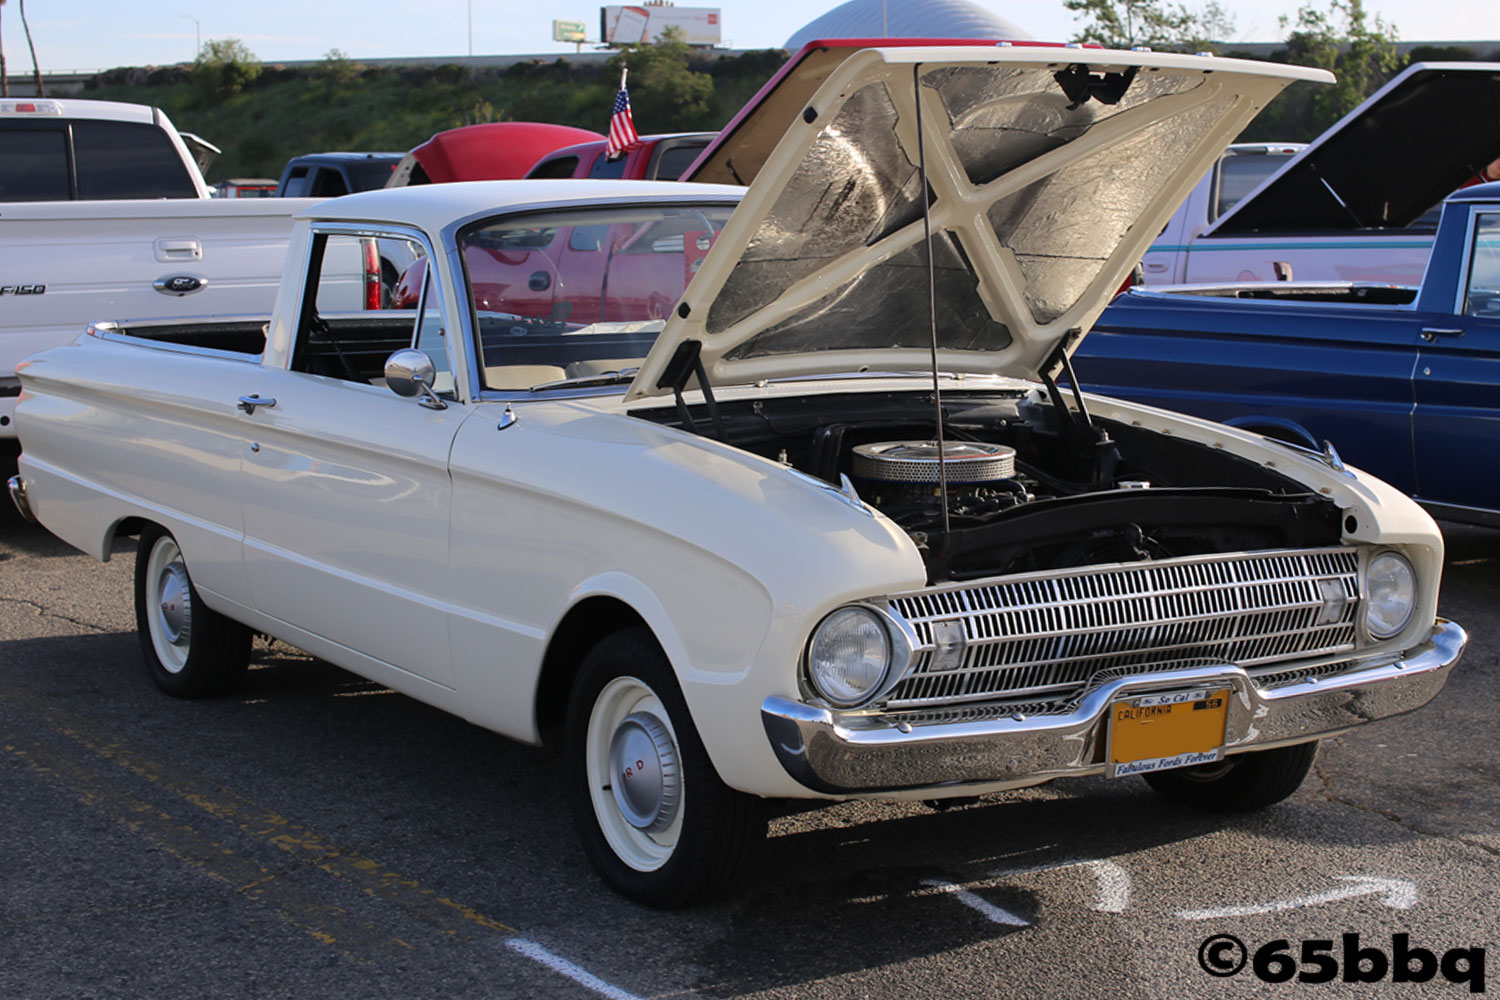 fabulous-fords-forever-april-2019-65bbq-r11.jpg